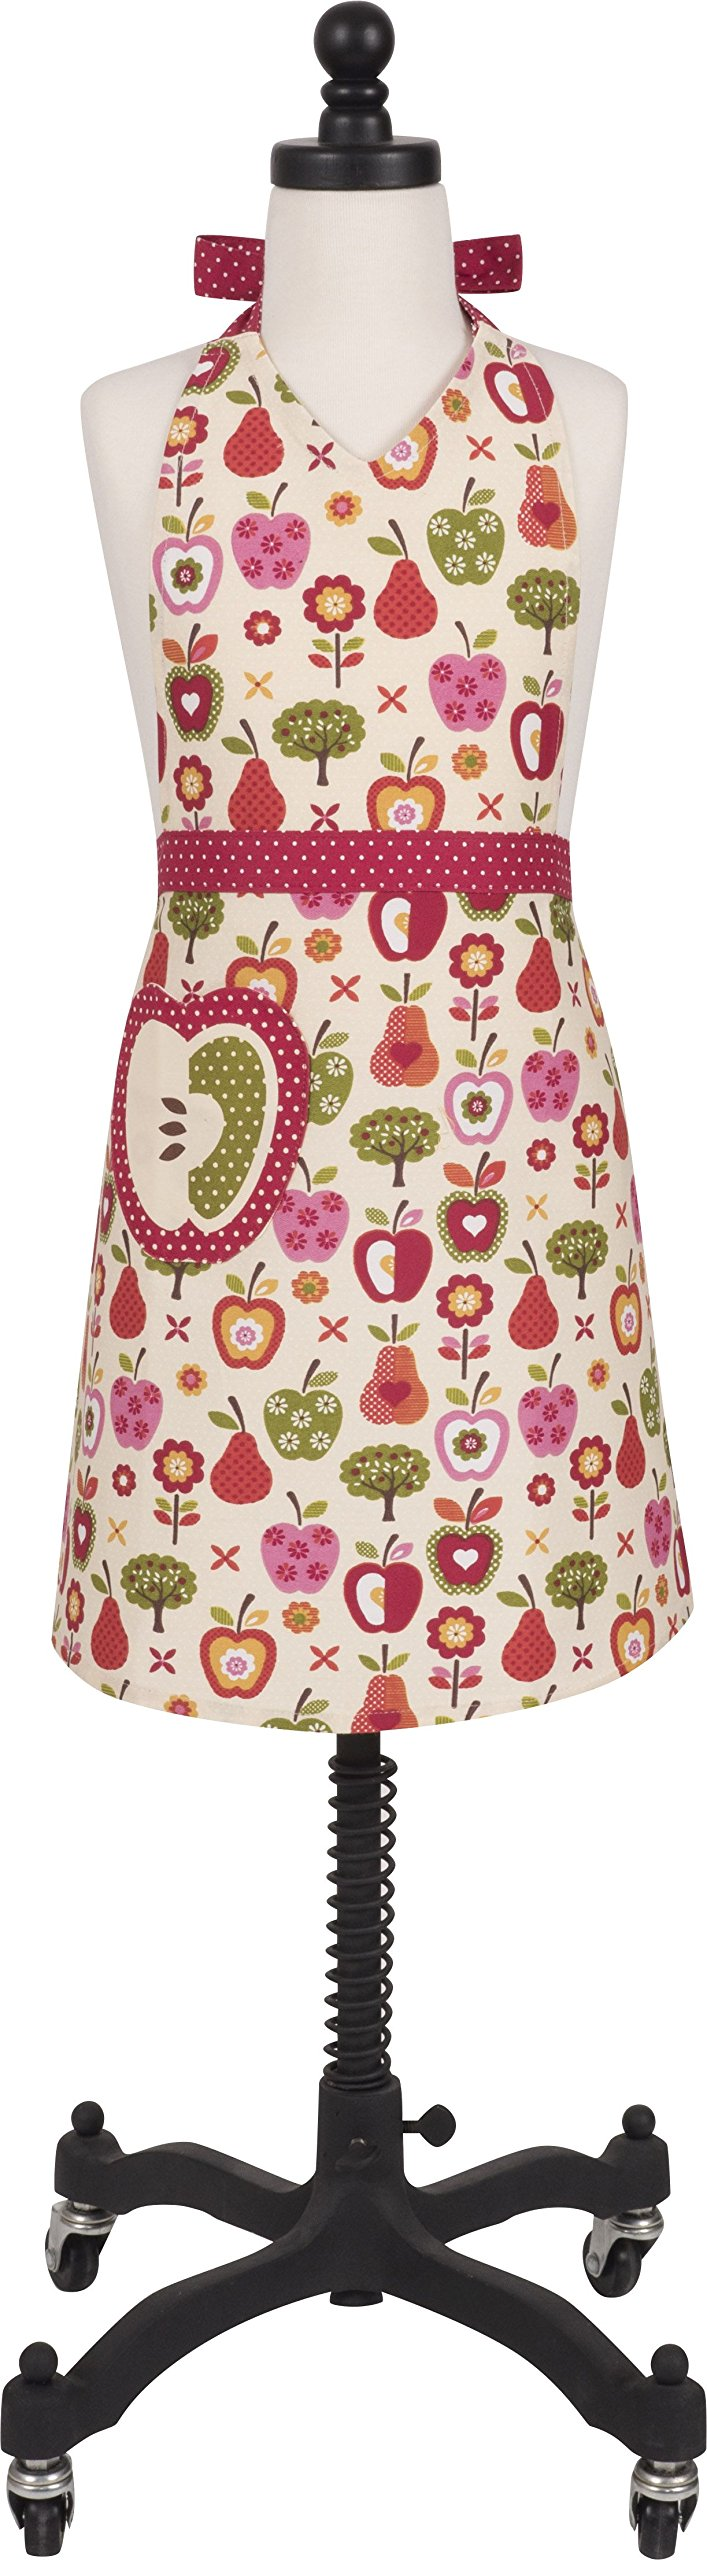 Handstand Kitchen Child's 100% Cotton 'An Apple a Day' Apron with Patch Pocket